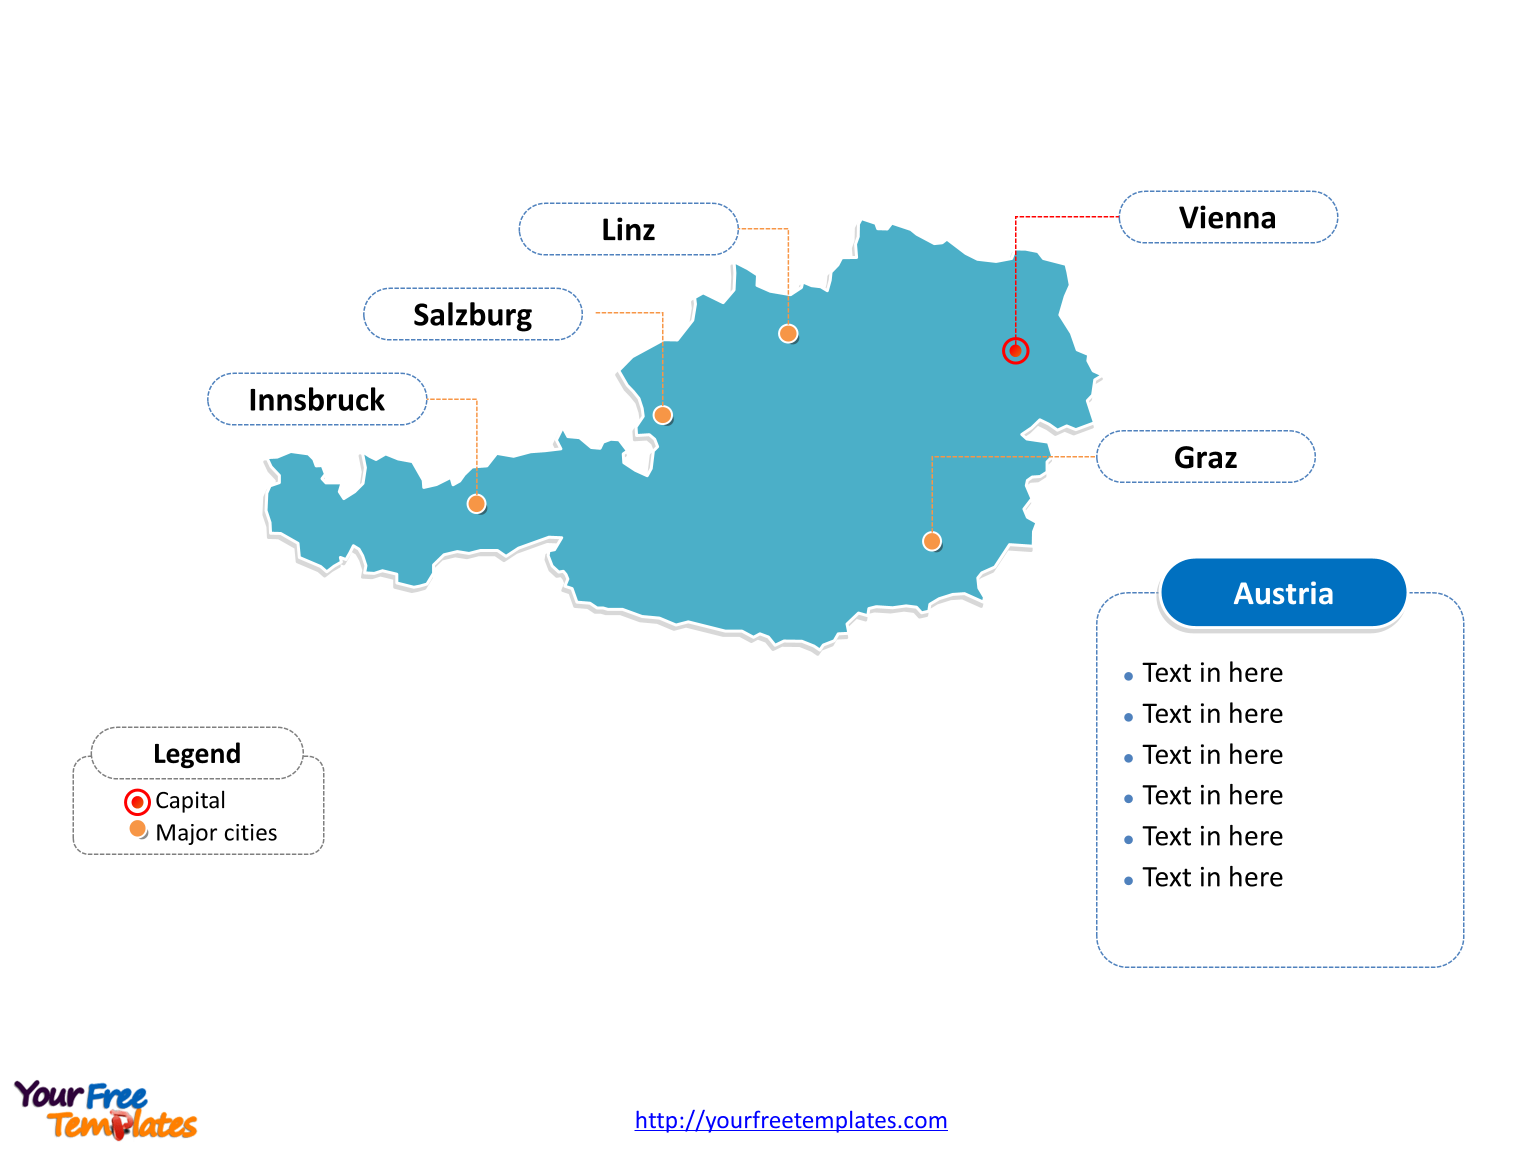 Free Austria Editable Map Free PowerPoint Templates - Austria major cities map